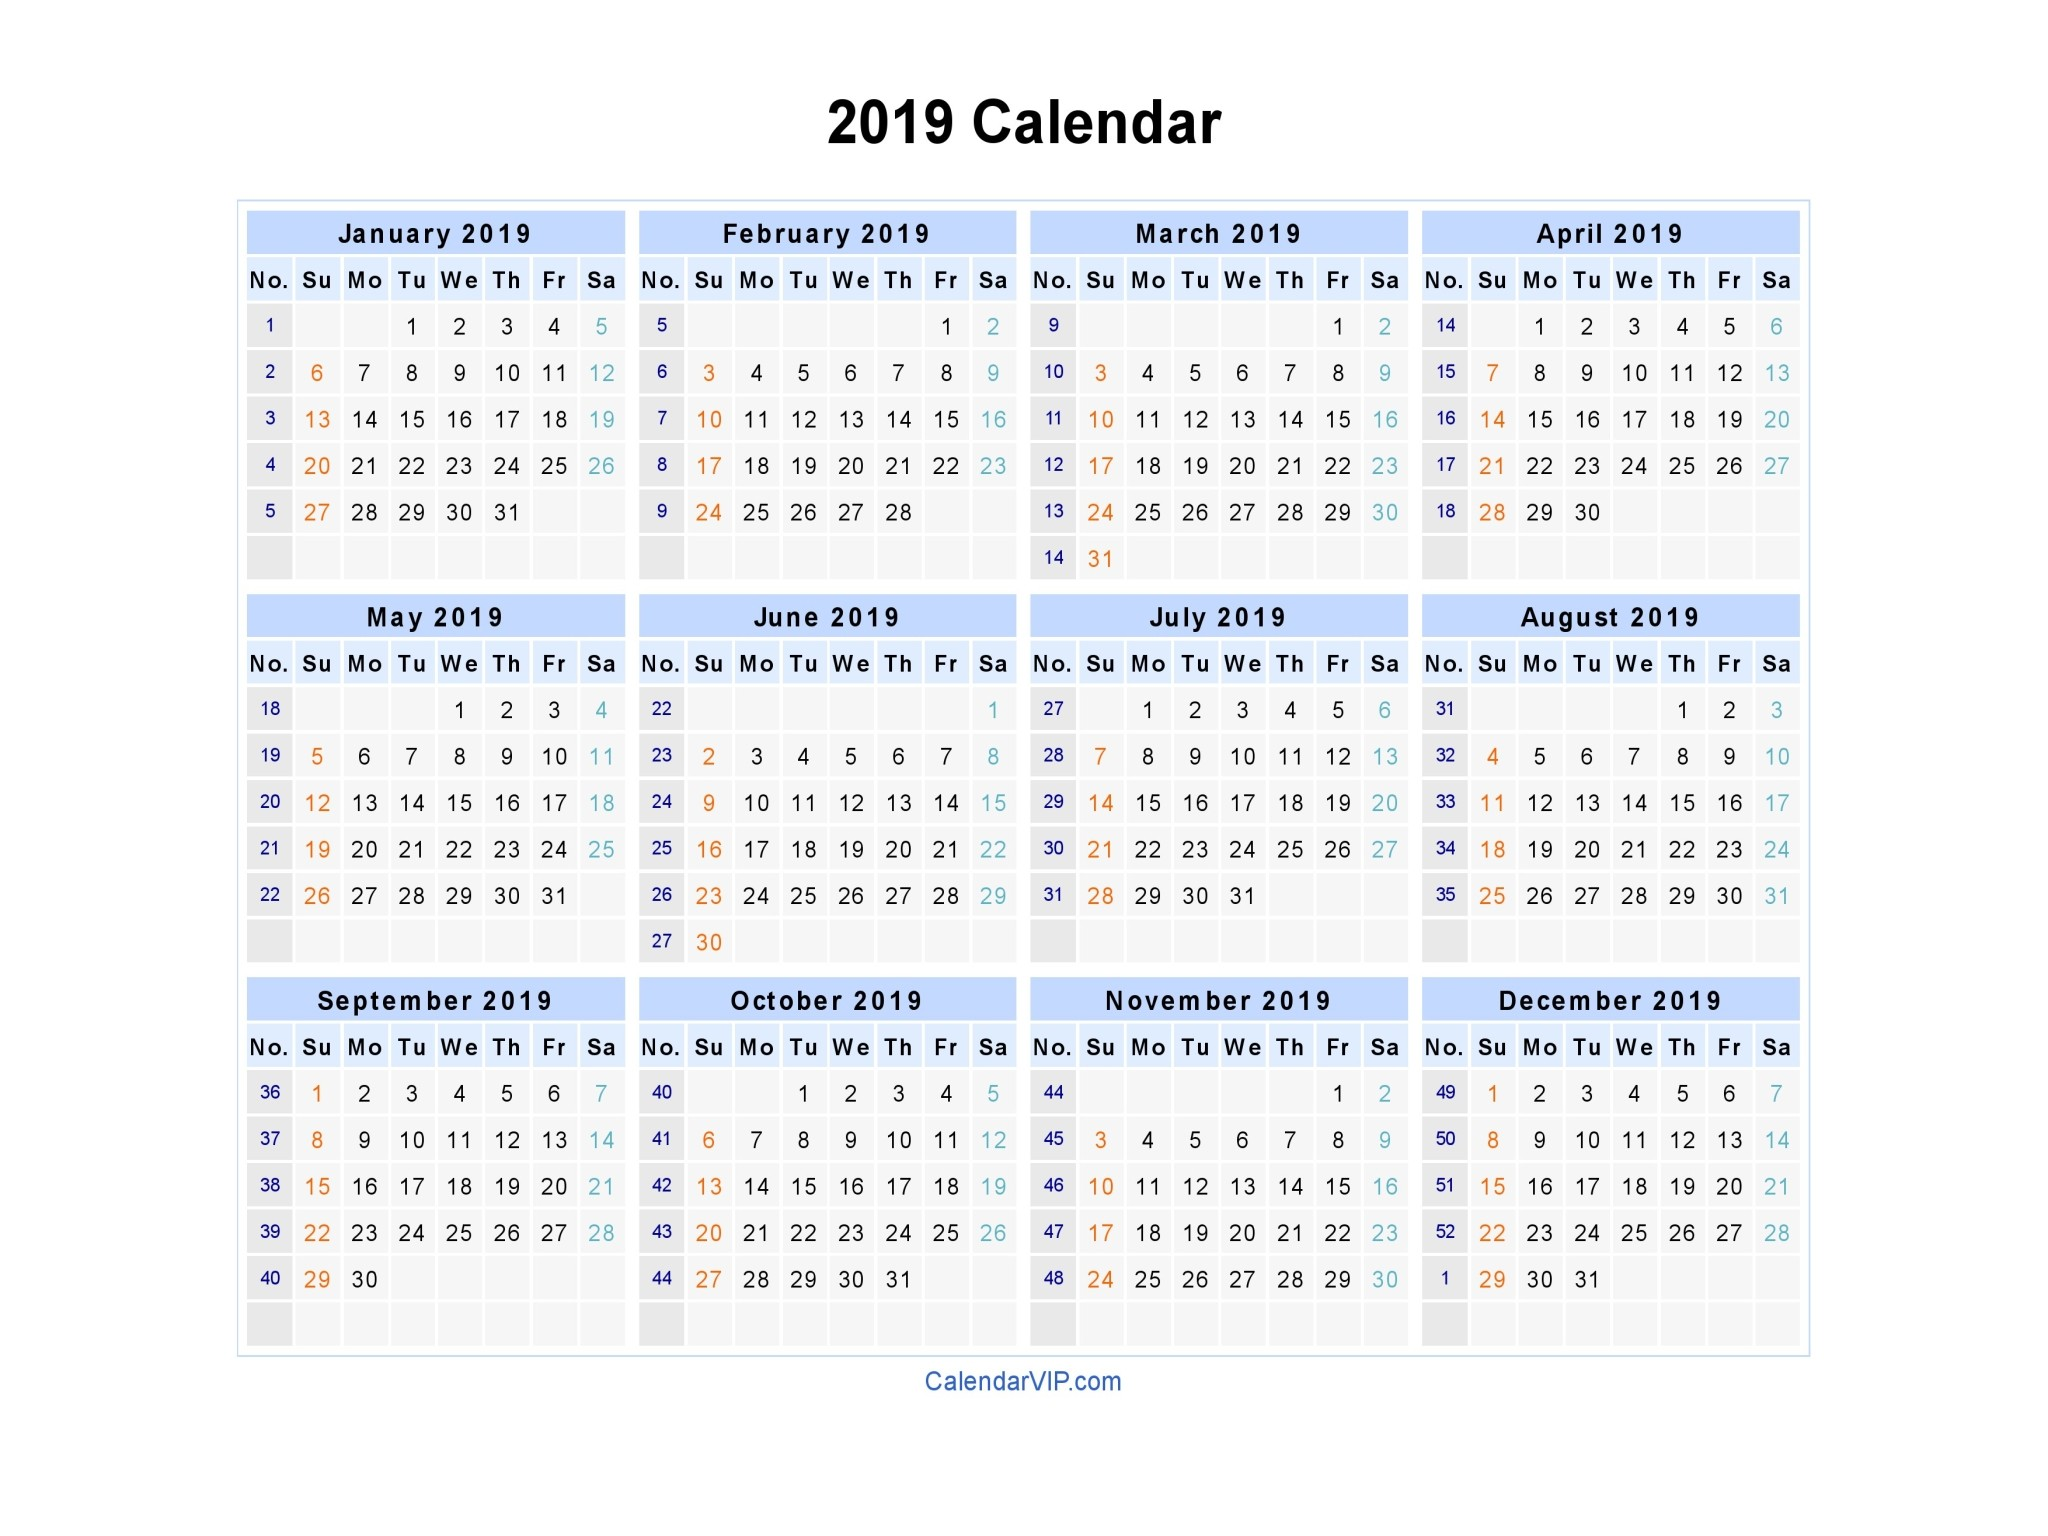 Calendario 2019 E 2020 Más Recientes 2019 Word Calendar Calendar 2019 Free Printable Word Of Calendario 2019 E 2020 Más Actual Calendar Template In Word 2010 S Personalize A for Microsoft Mo